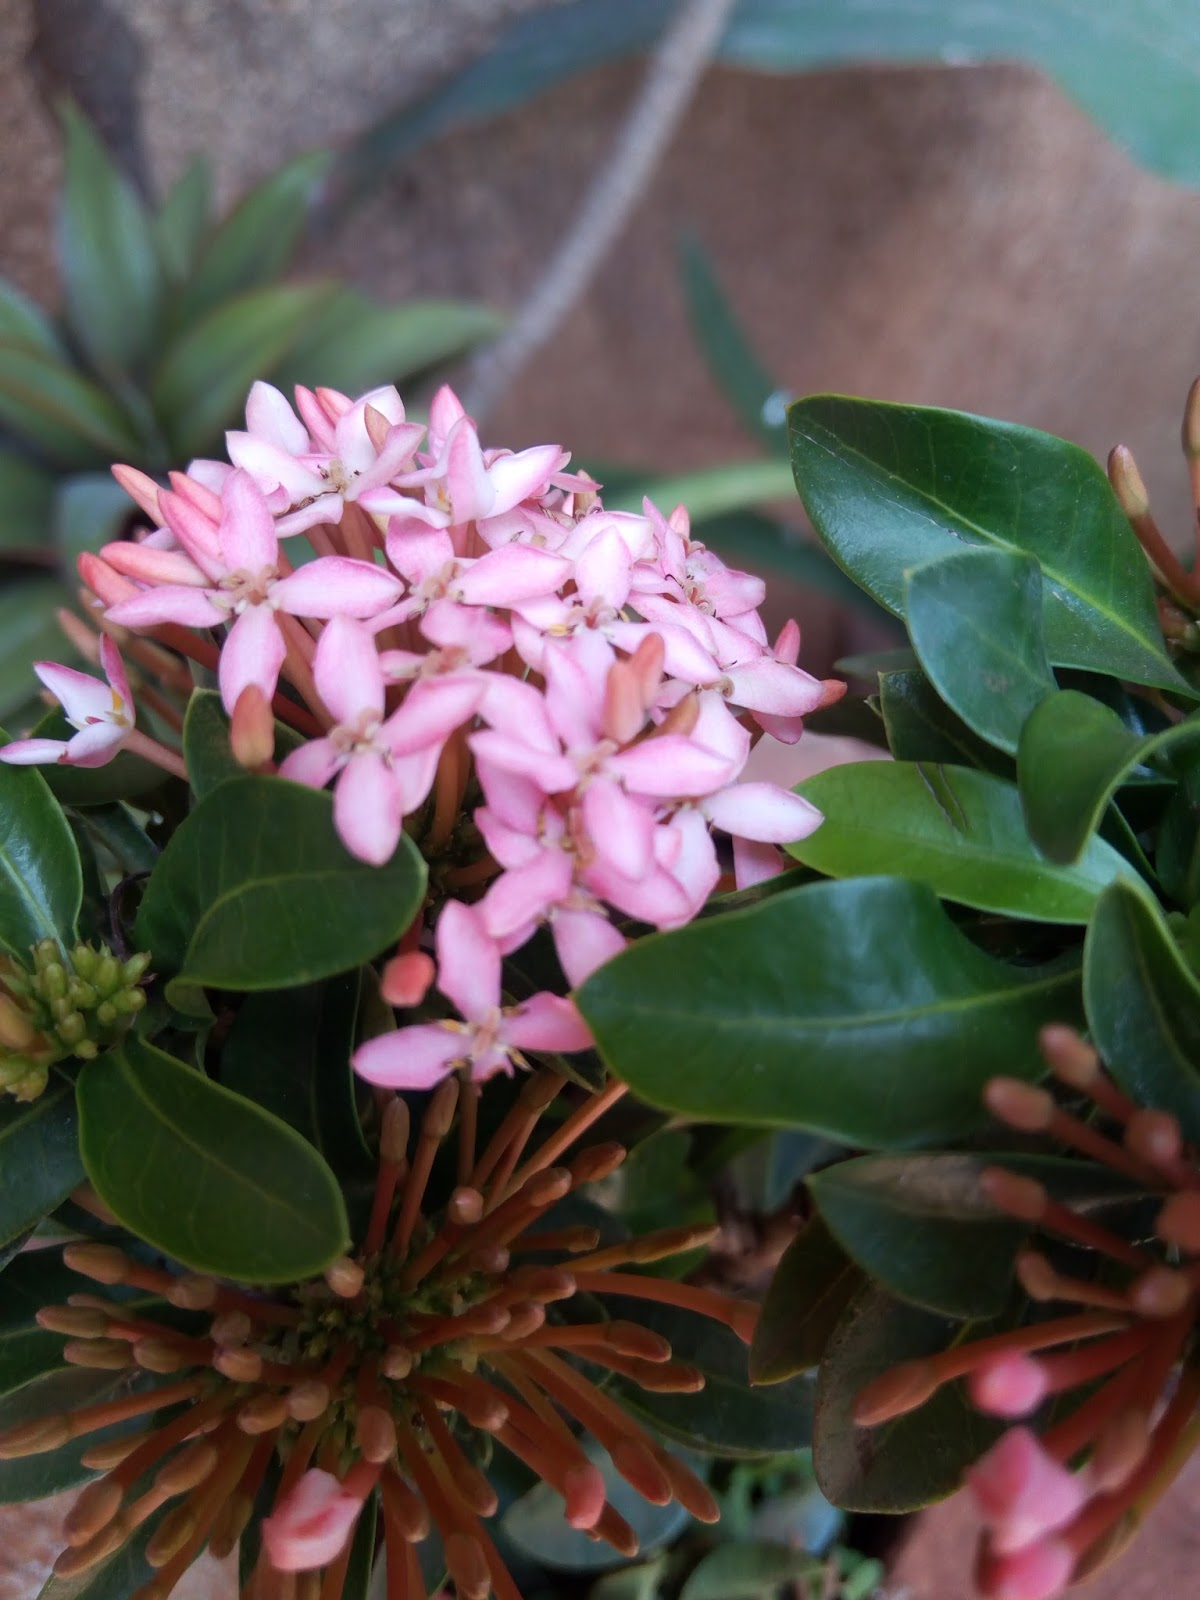 Buy Ixora In Orlando Florida Lake Mary Kissimmee Sanford: Garden Care Simplified: Ixora Flowers In Beautiful Colours